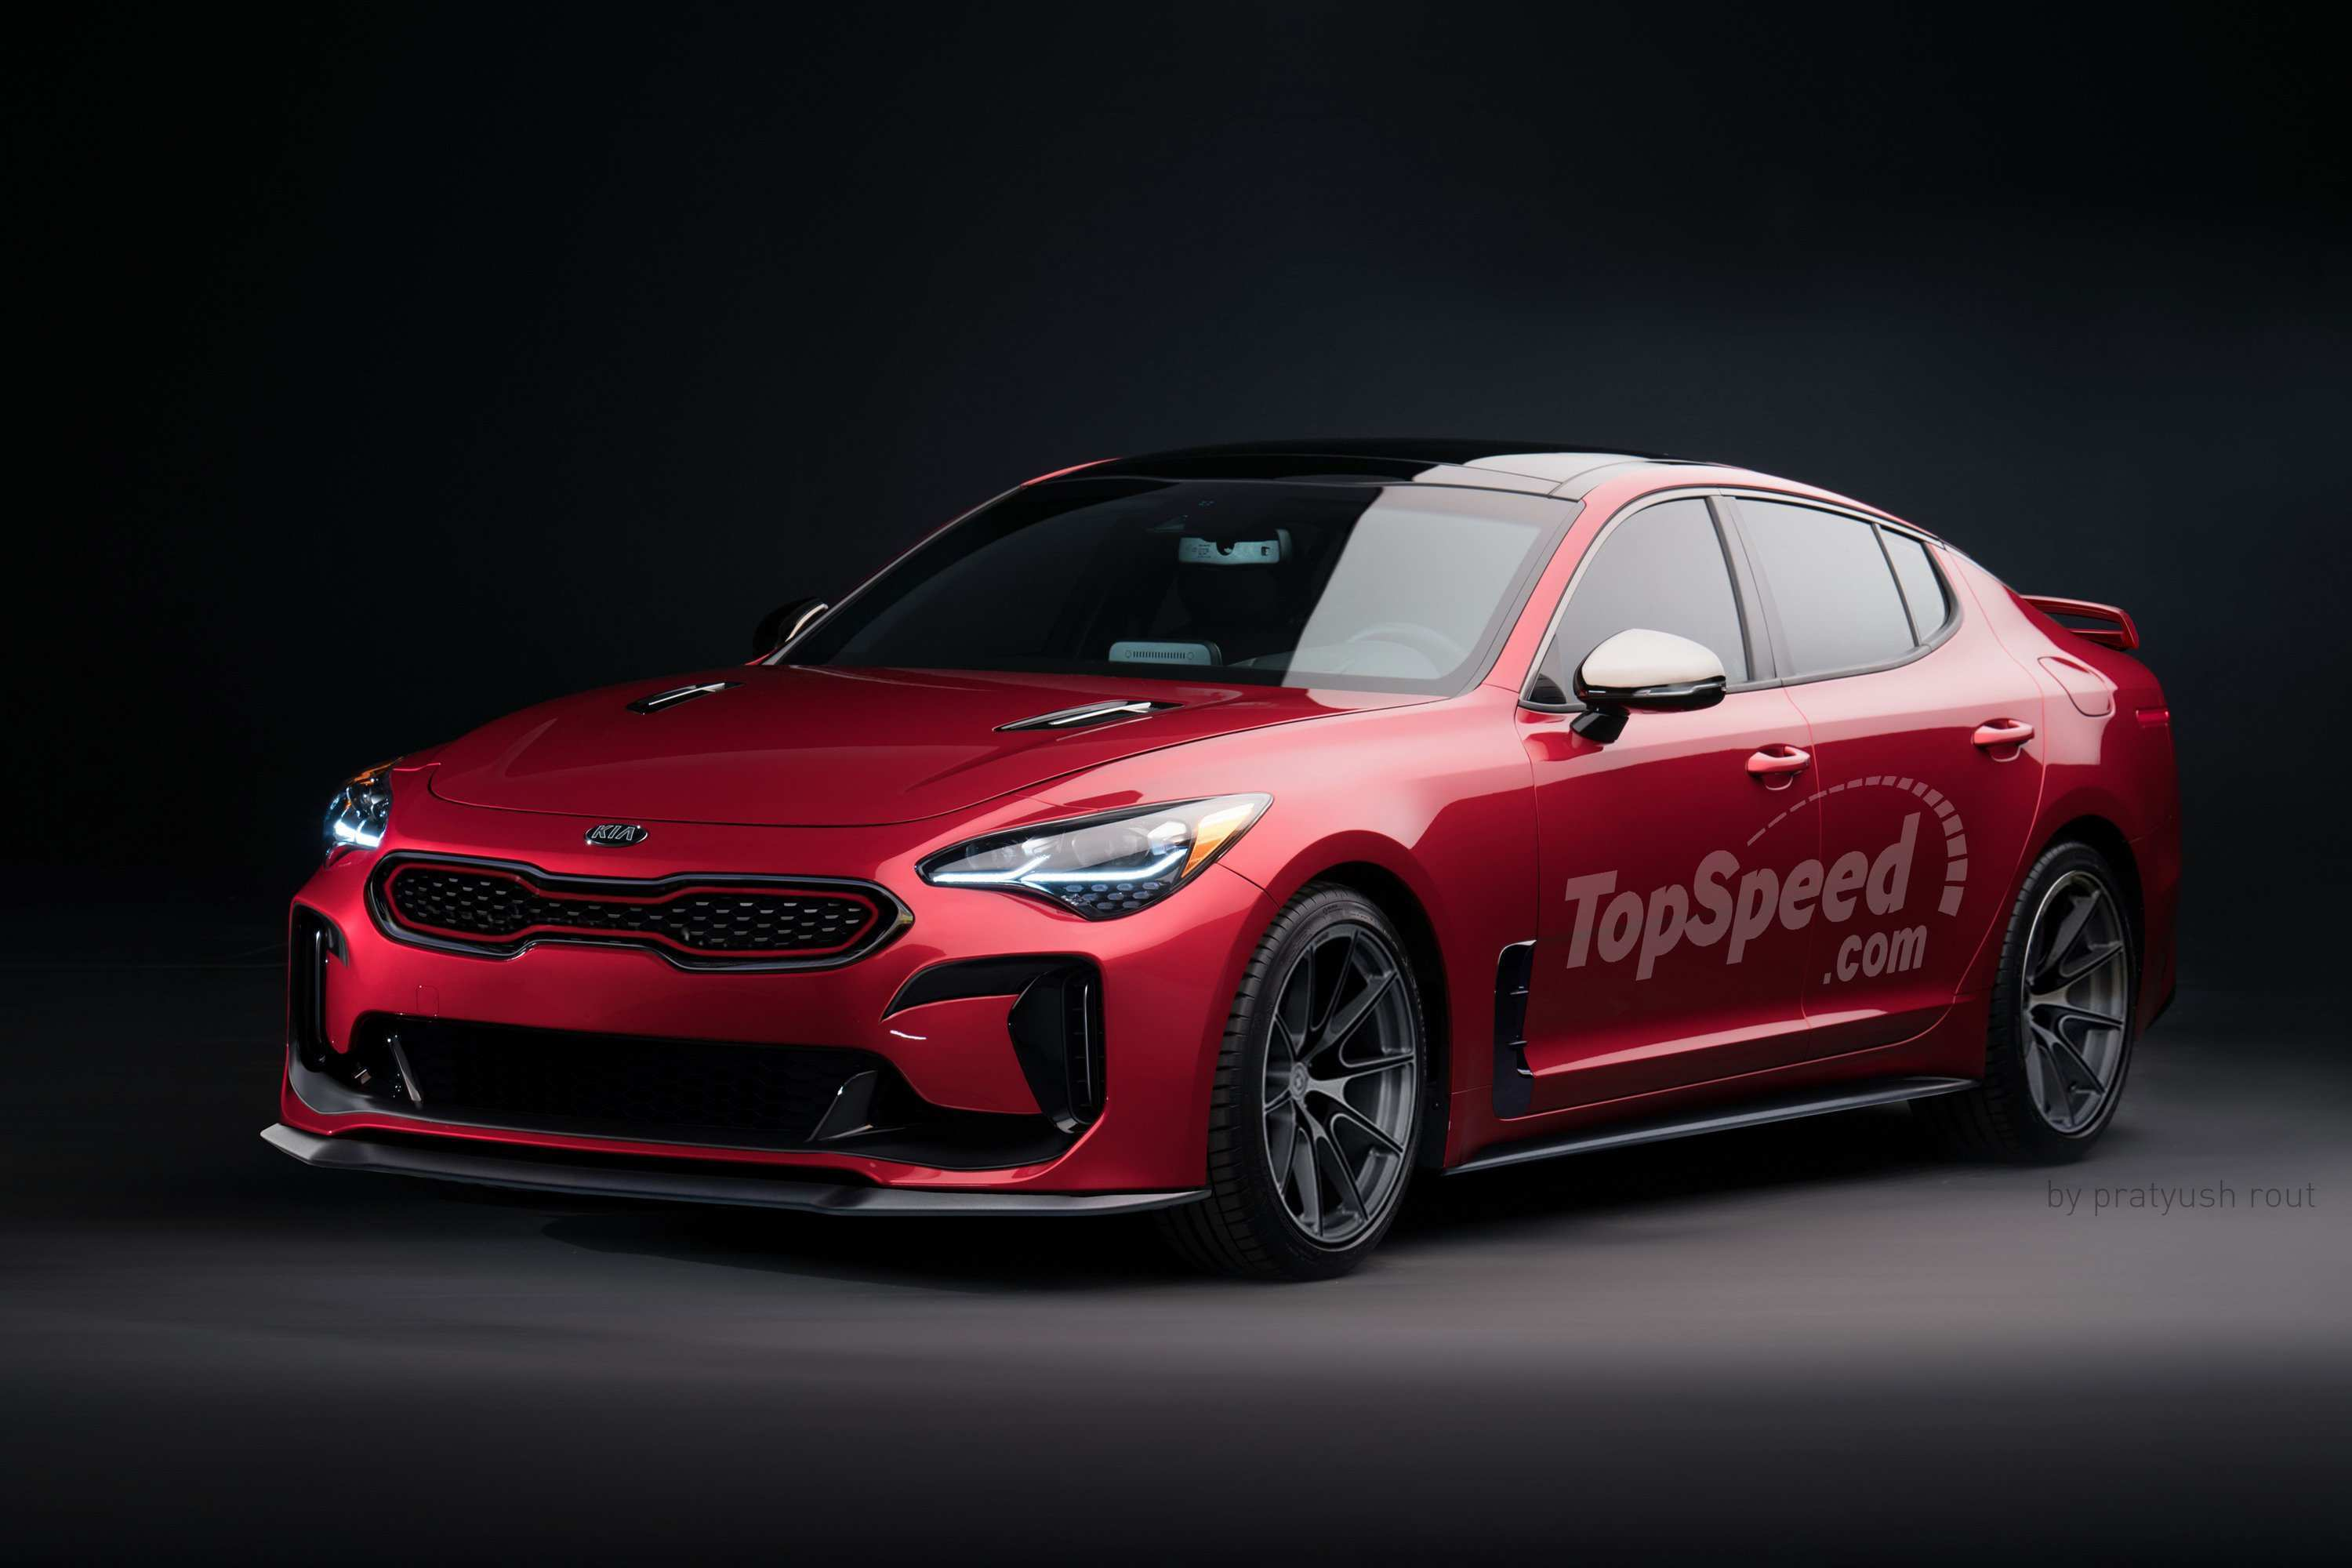 62 Best Review 2019 Kia Stinger Gt Plus Exterior and Interior with 2019 Kia Stinger Gt Plus